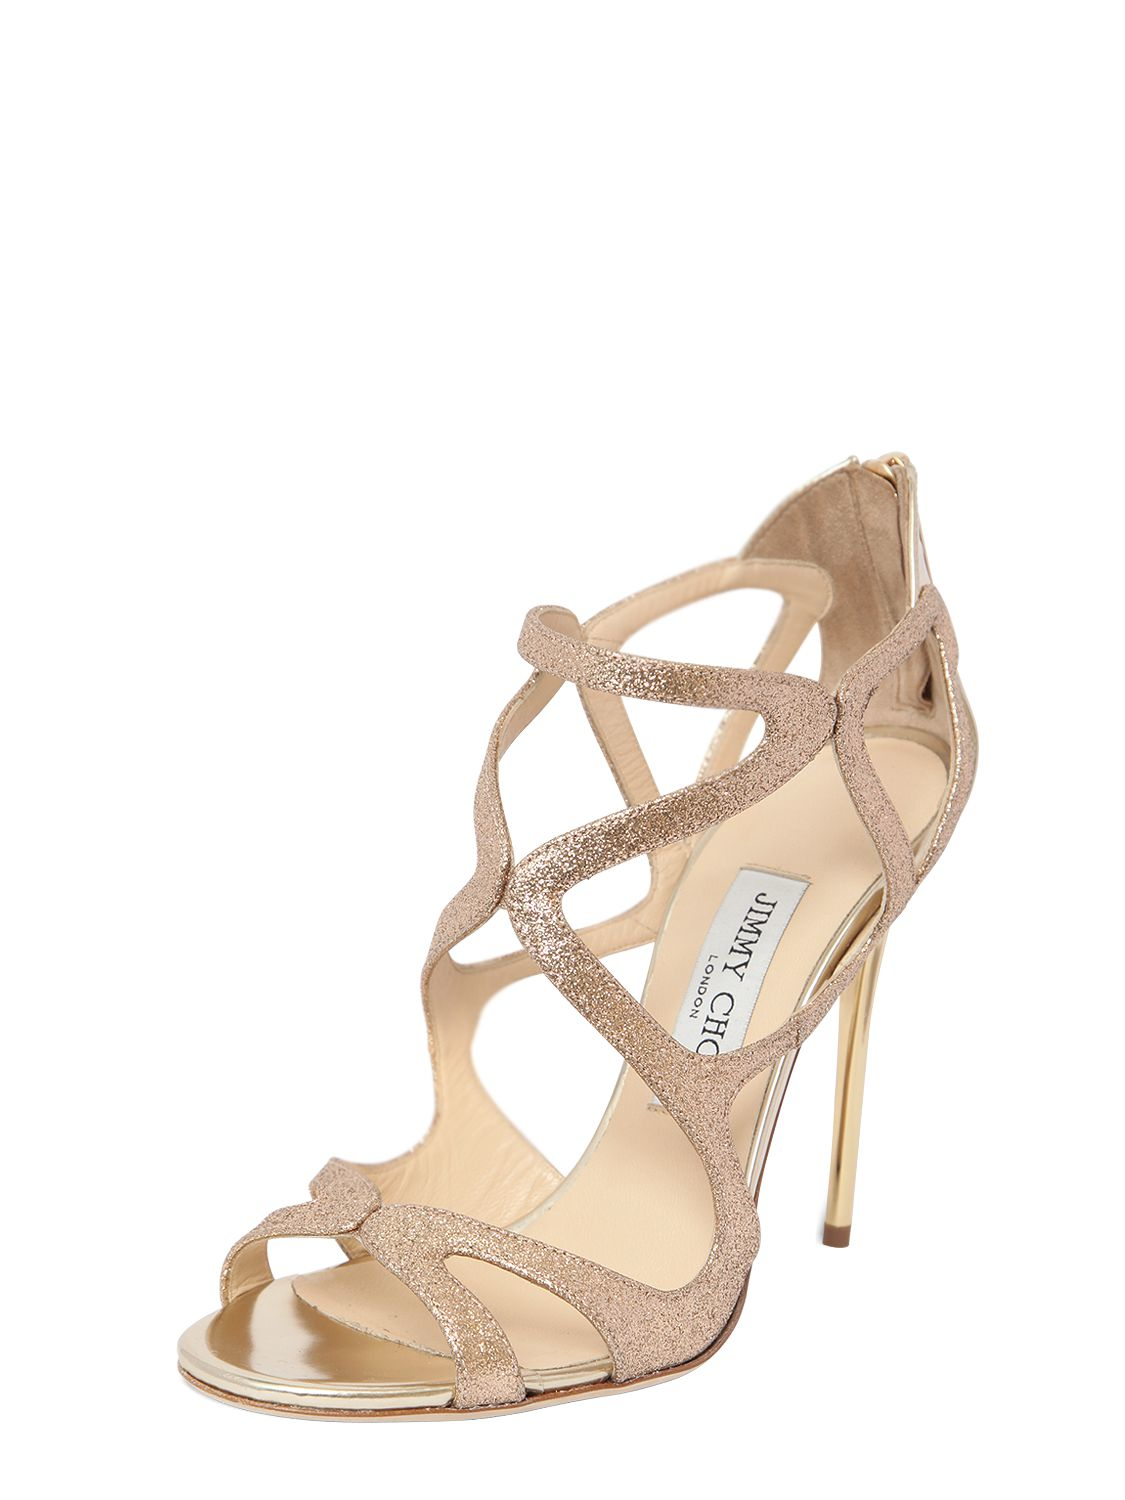 1a3fce55b521 ... purchase lyst jimmy choo 110mm leslie glitter sandals in metallic 0f9de  0db24